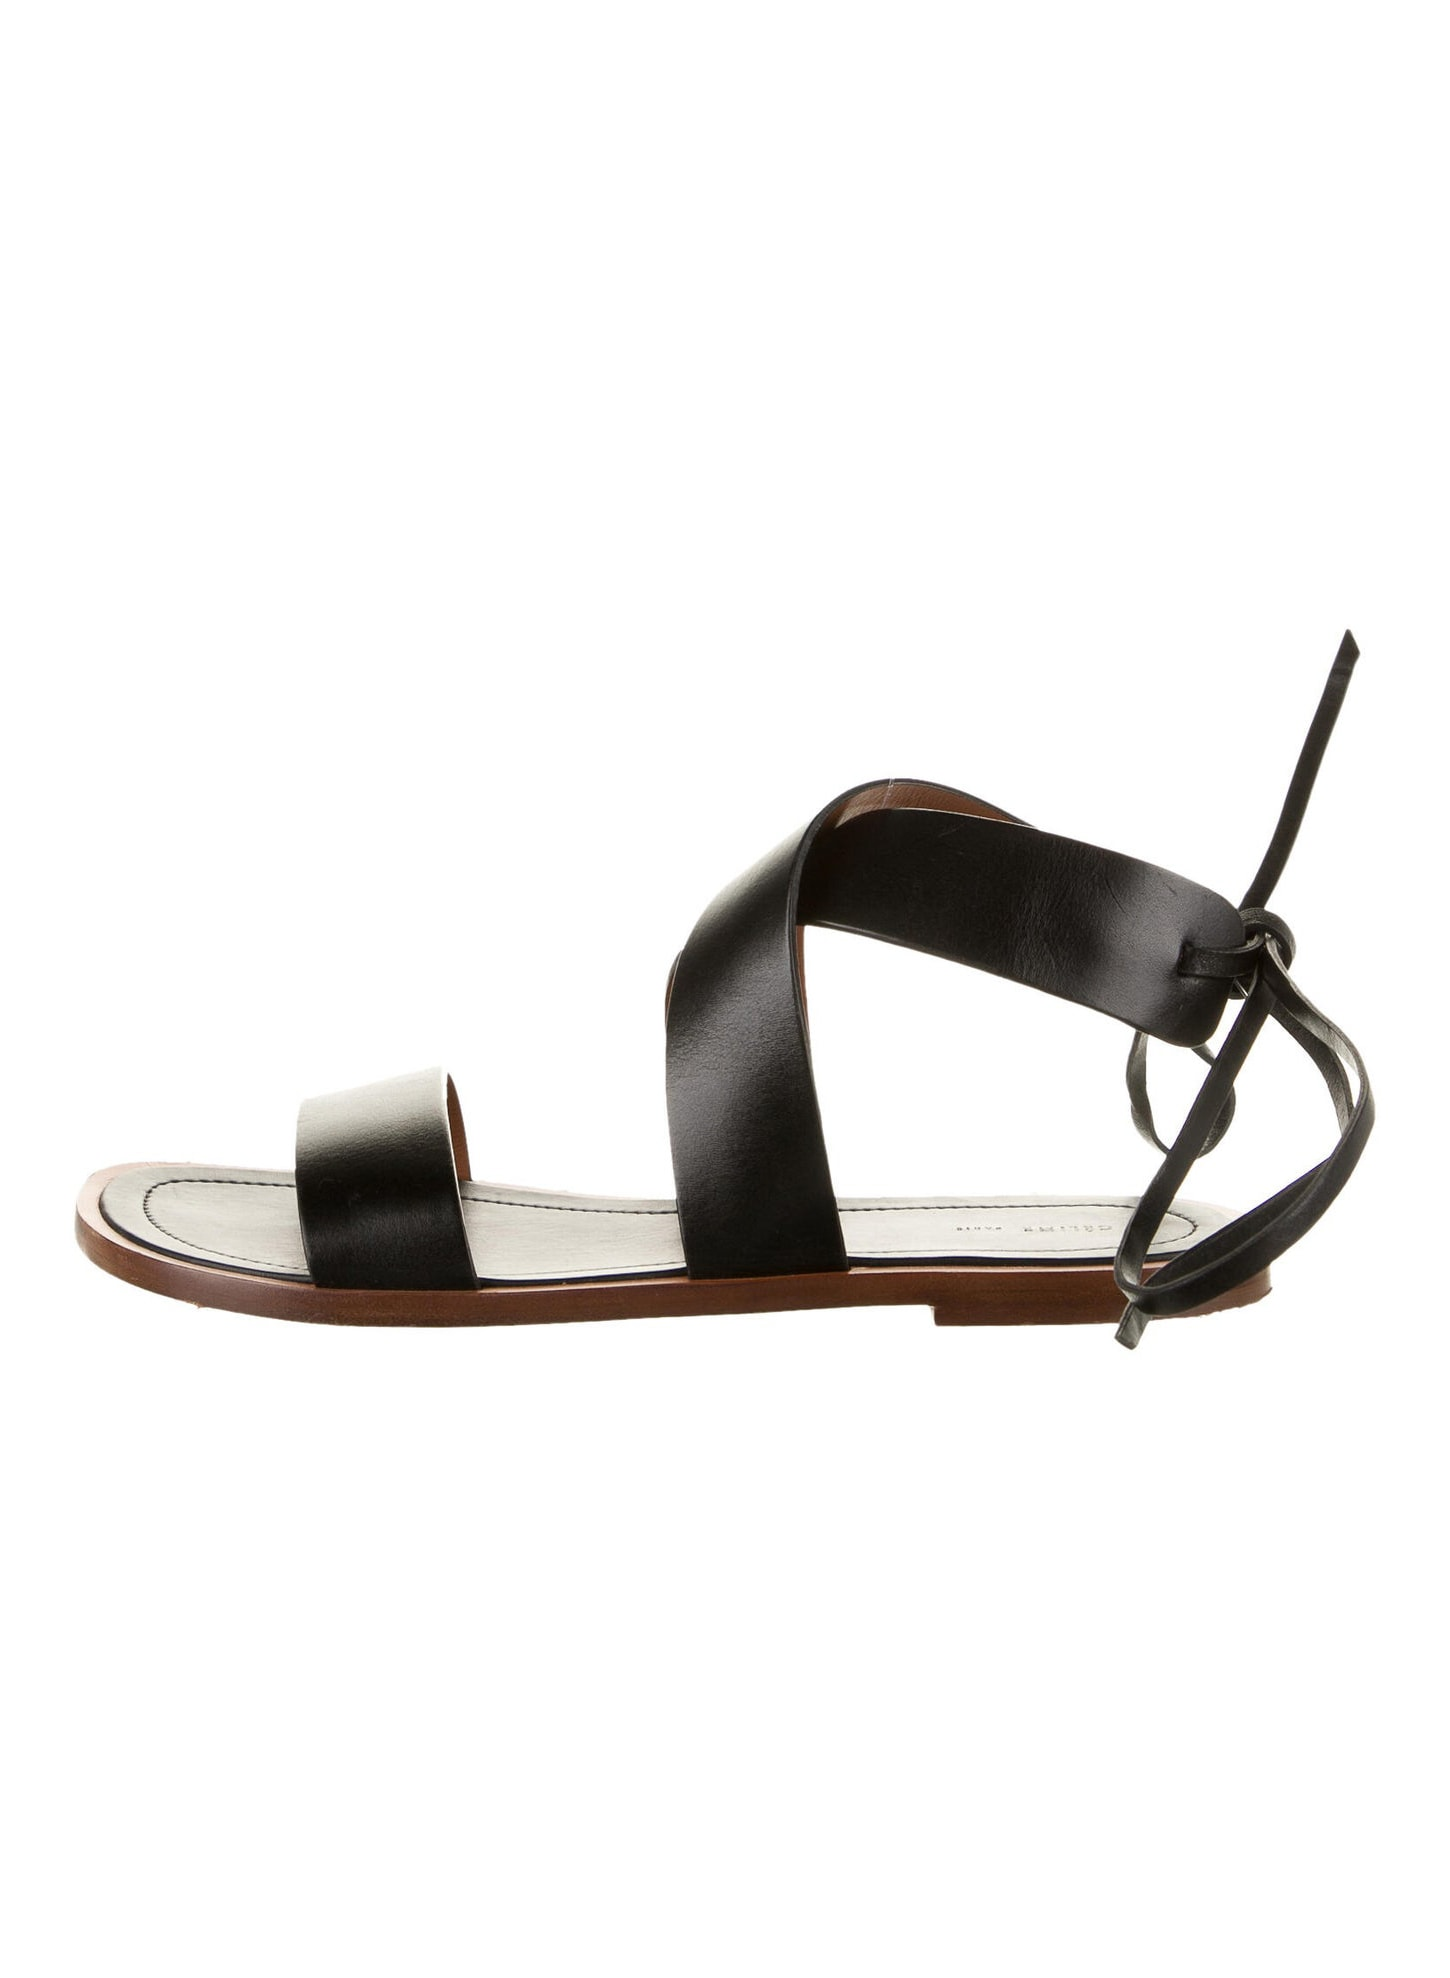 CELINE Leather Sandals copy